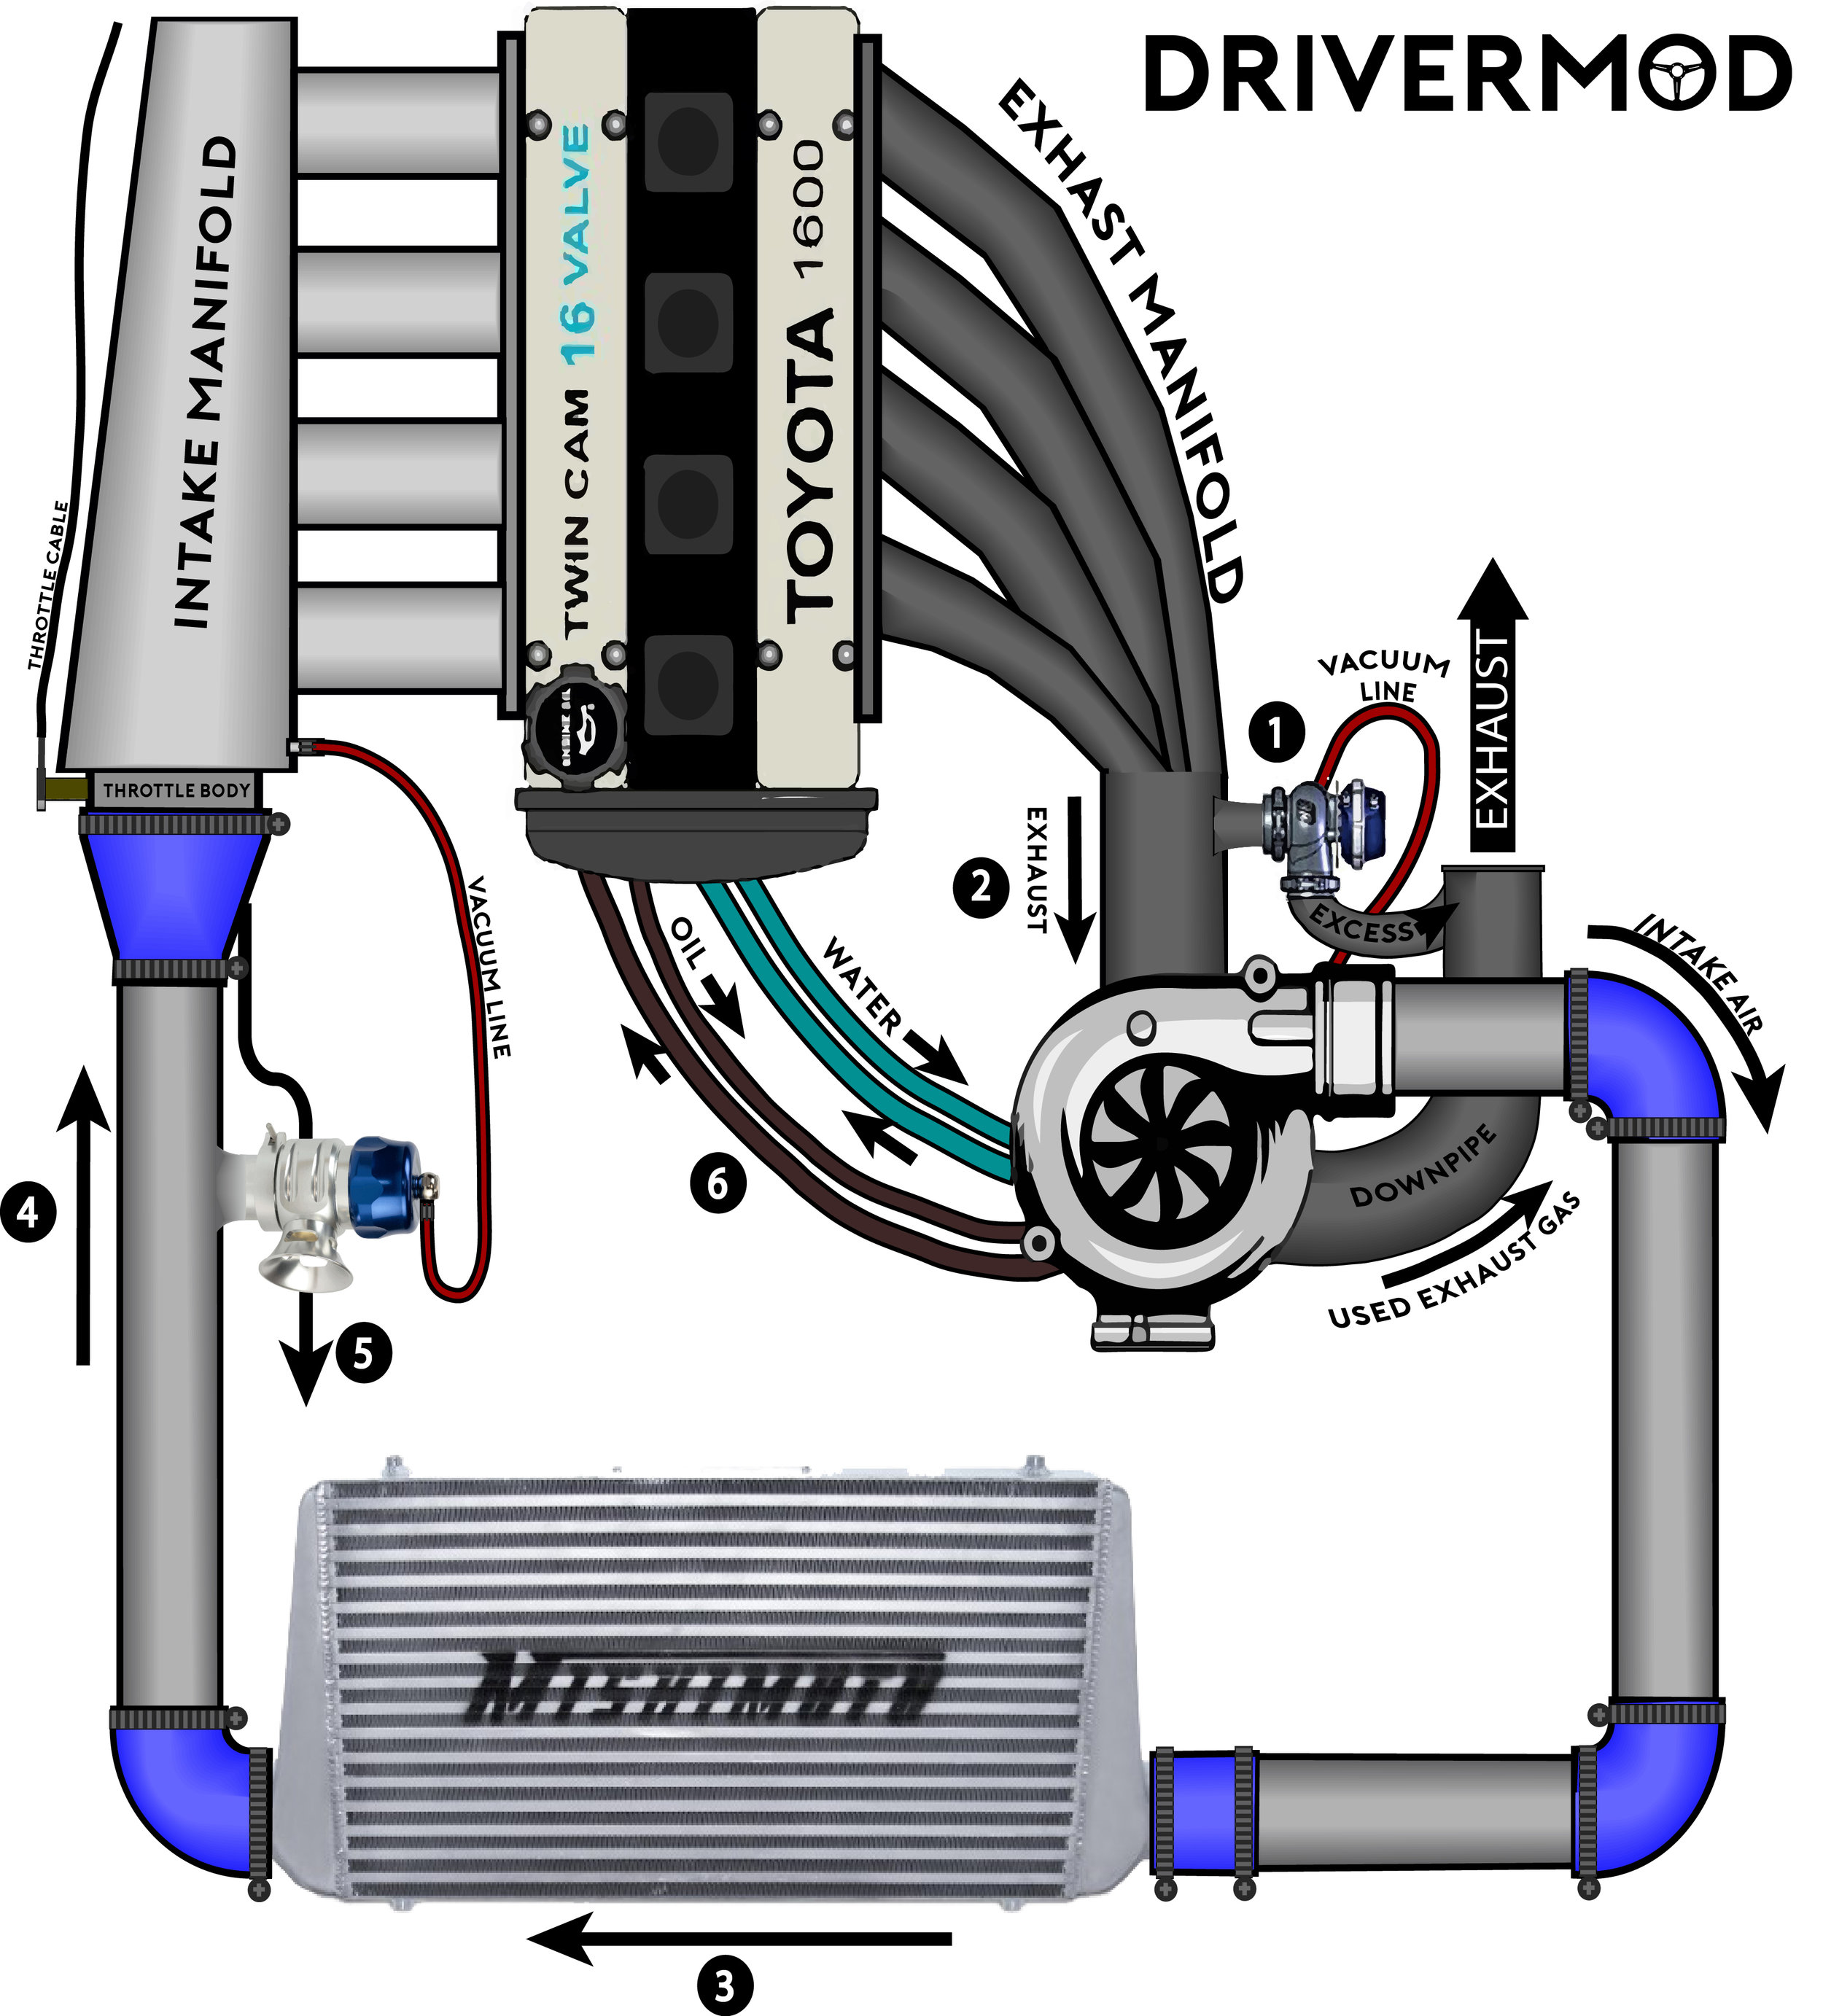 Turbo Installation Diagrams Wiring Diagram Libraries Hks Evc Timer Turbocharging For Dummies U2013 Drivermodbut It Will Answer Any Questions You Have That Would Otherwise